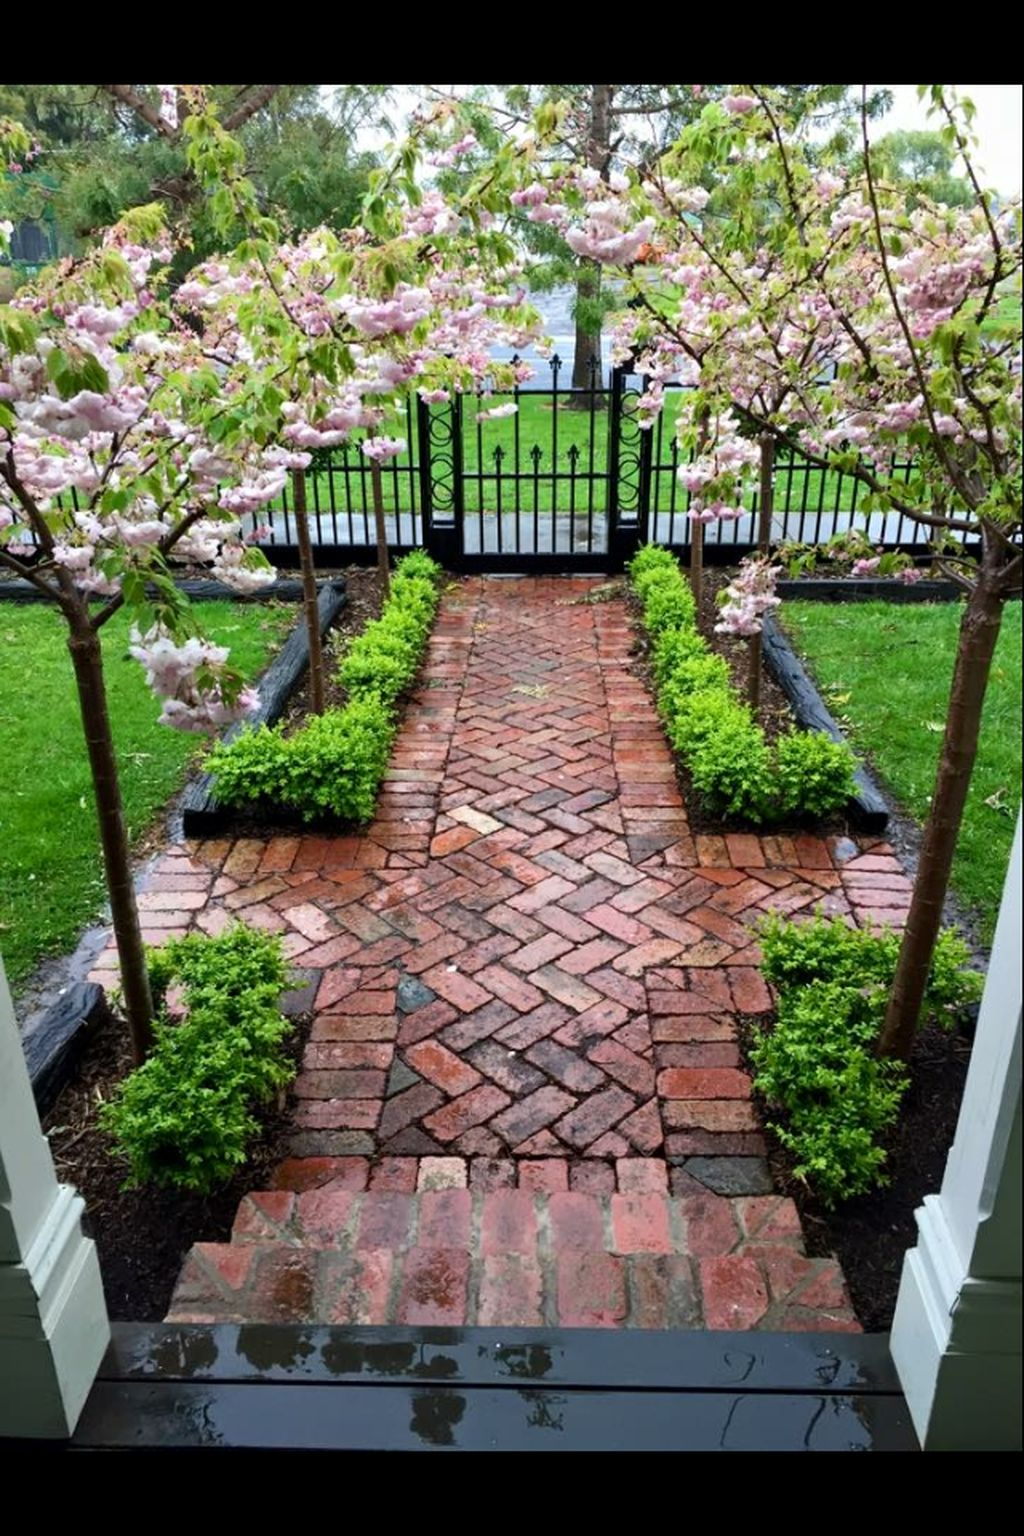 Landscaping ideas for front yard with porch   The Best Front Yard Landscaping Ideas With Porch  Garden To